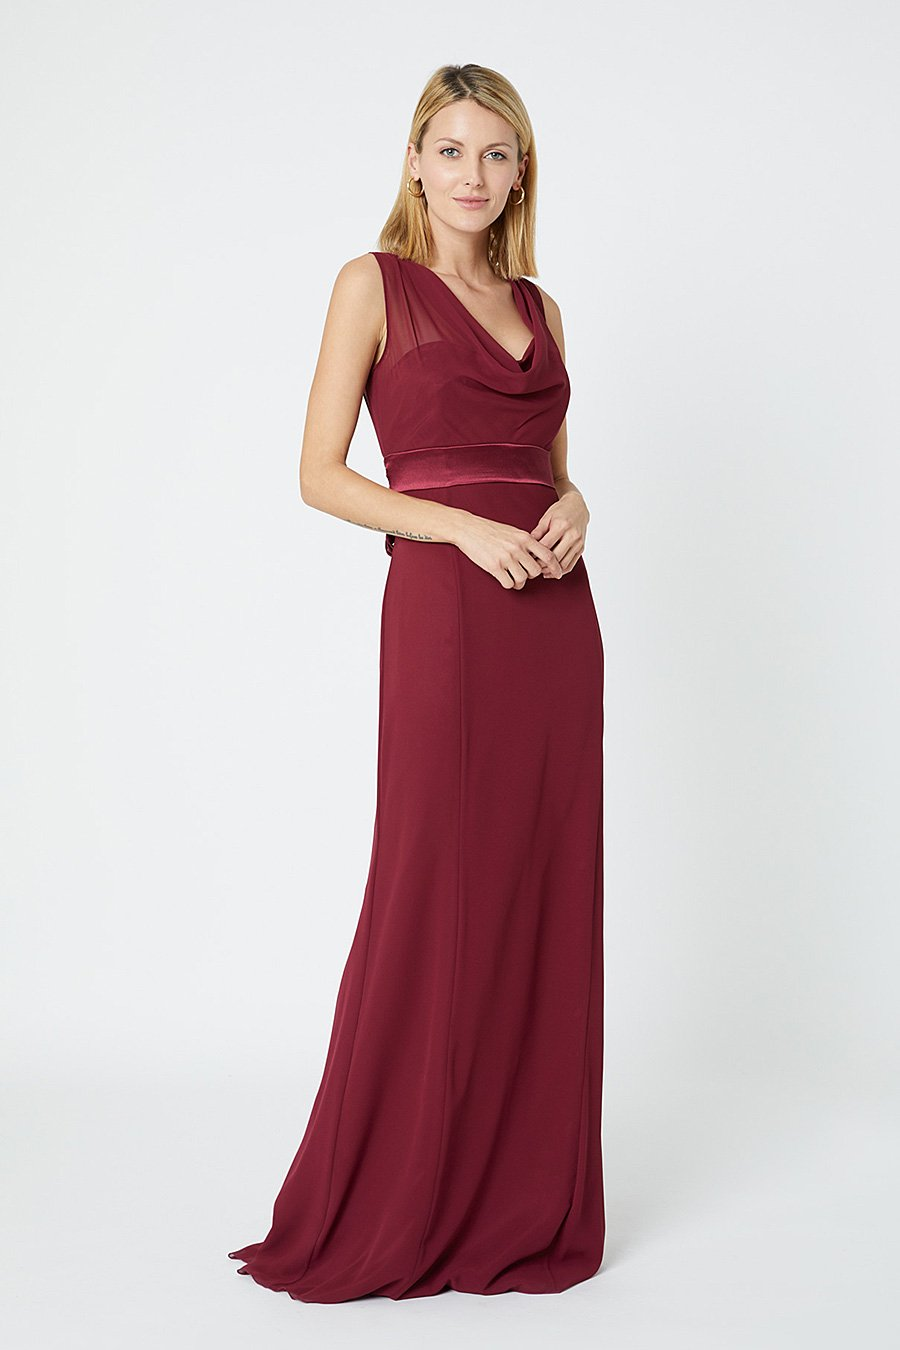 Penelope_fitted-Burgundy_Red-Front